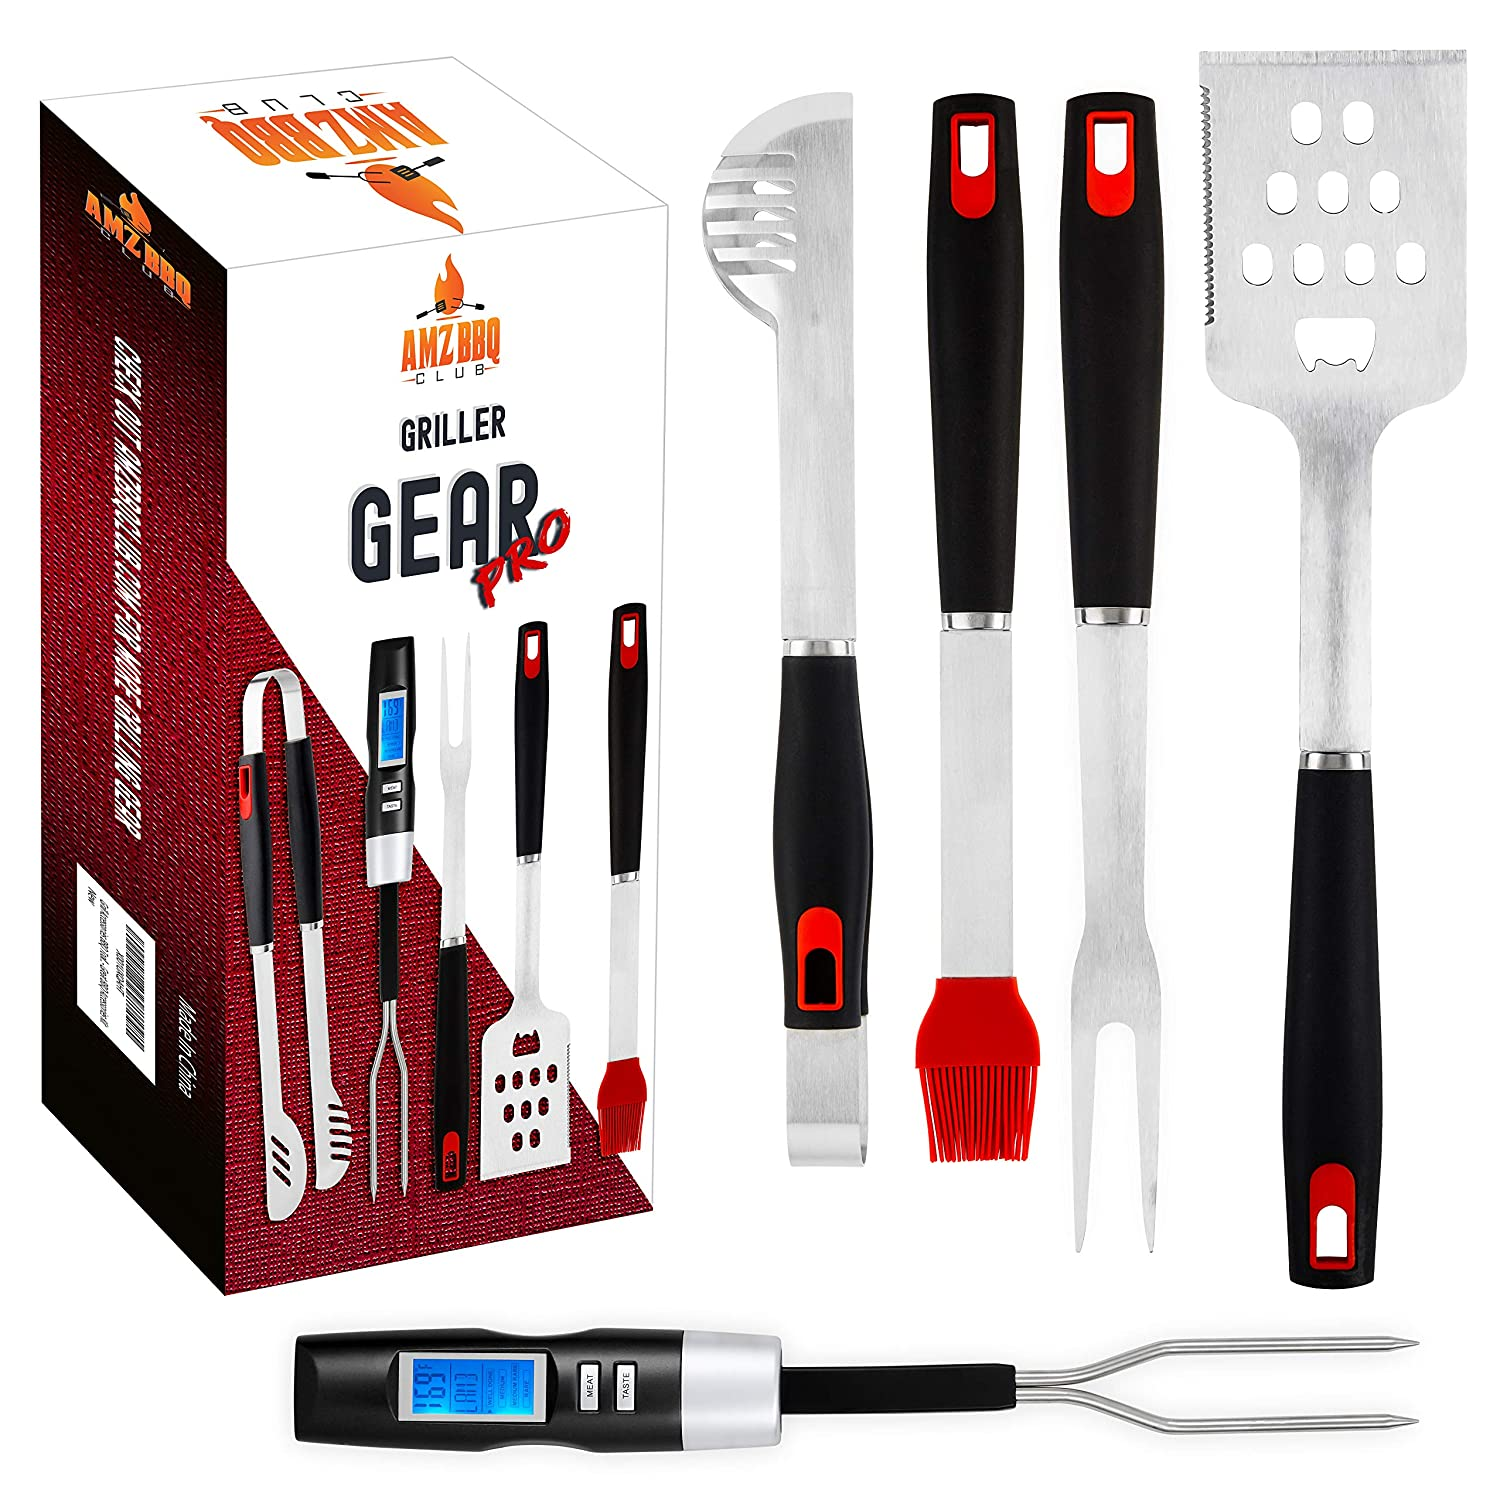 Ultimate BBQ Grill Tools Set with Meat Thermometer 4 Stainless Steel Grilling Accessories – 5 Piece BBQ Accessories Set Includes Tongs, Spatula, Fork, Silicon Basting Brush and Instant Read Digital